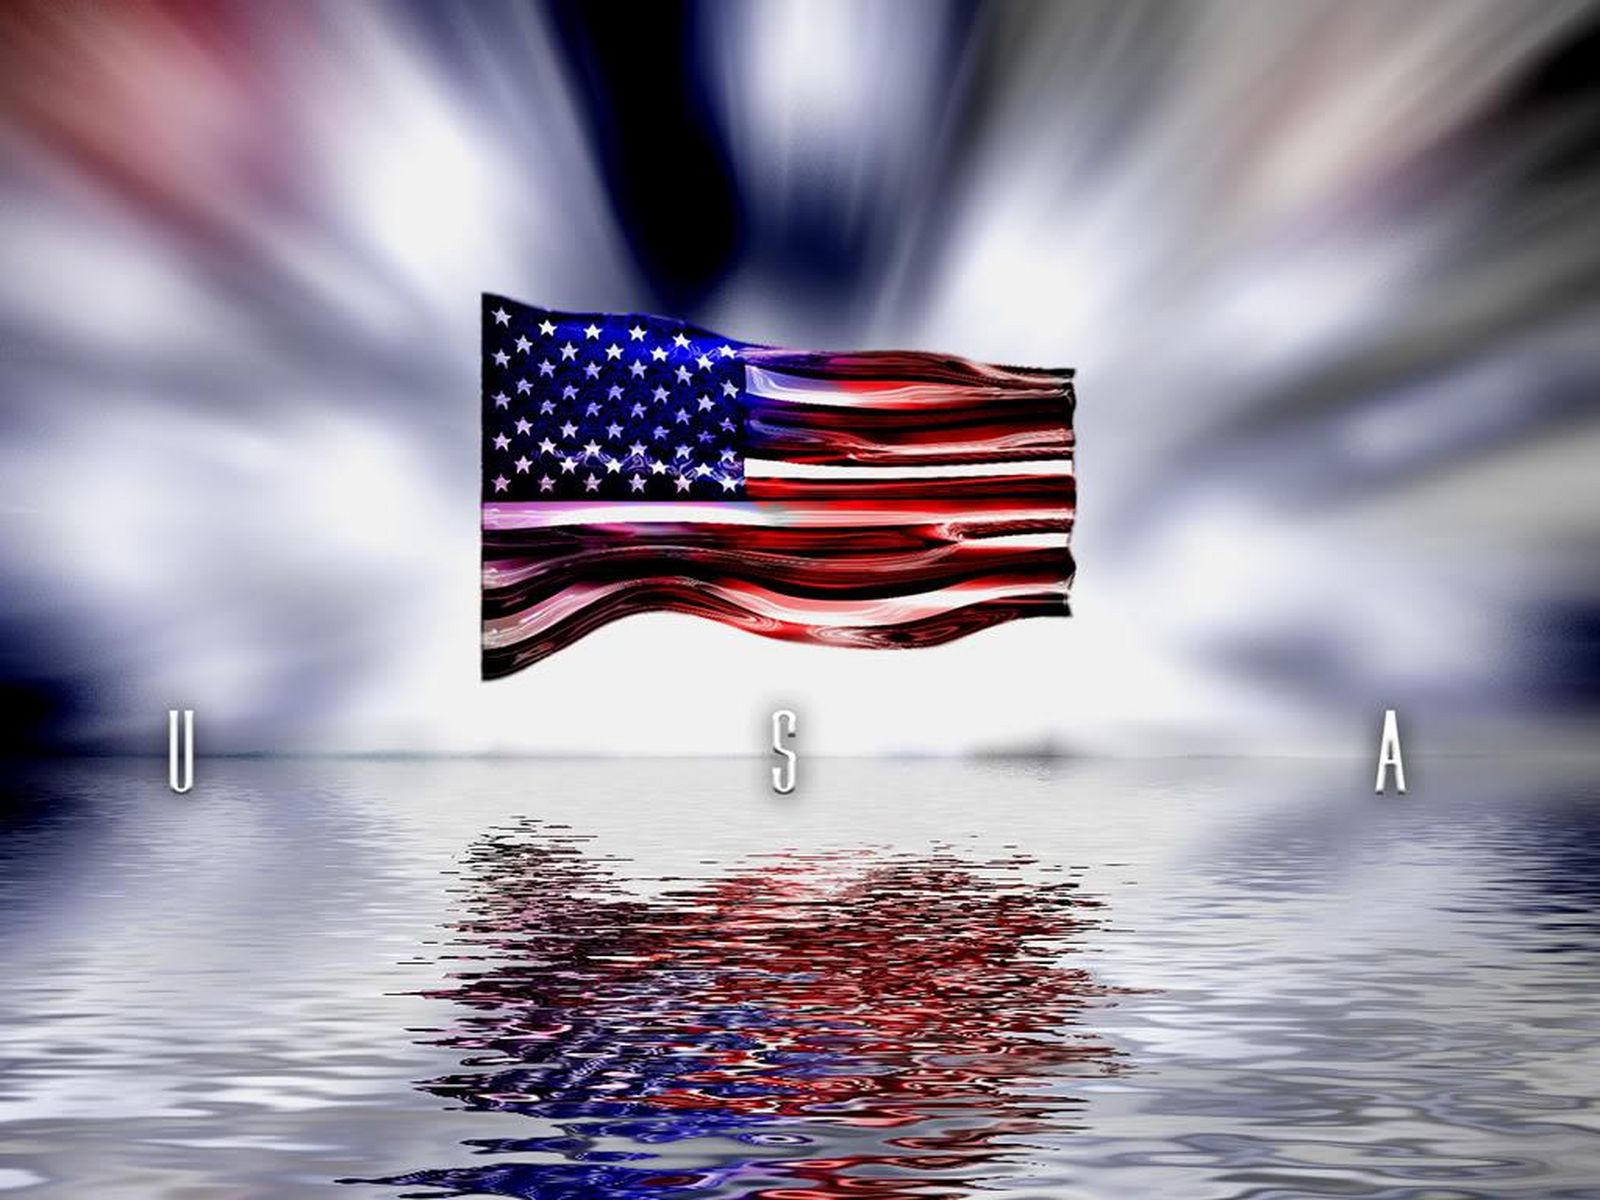 american flag free download business